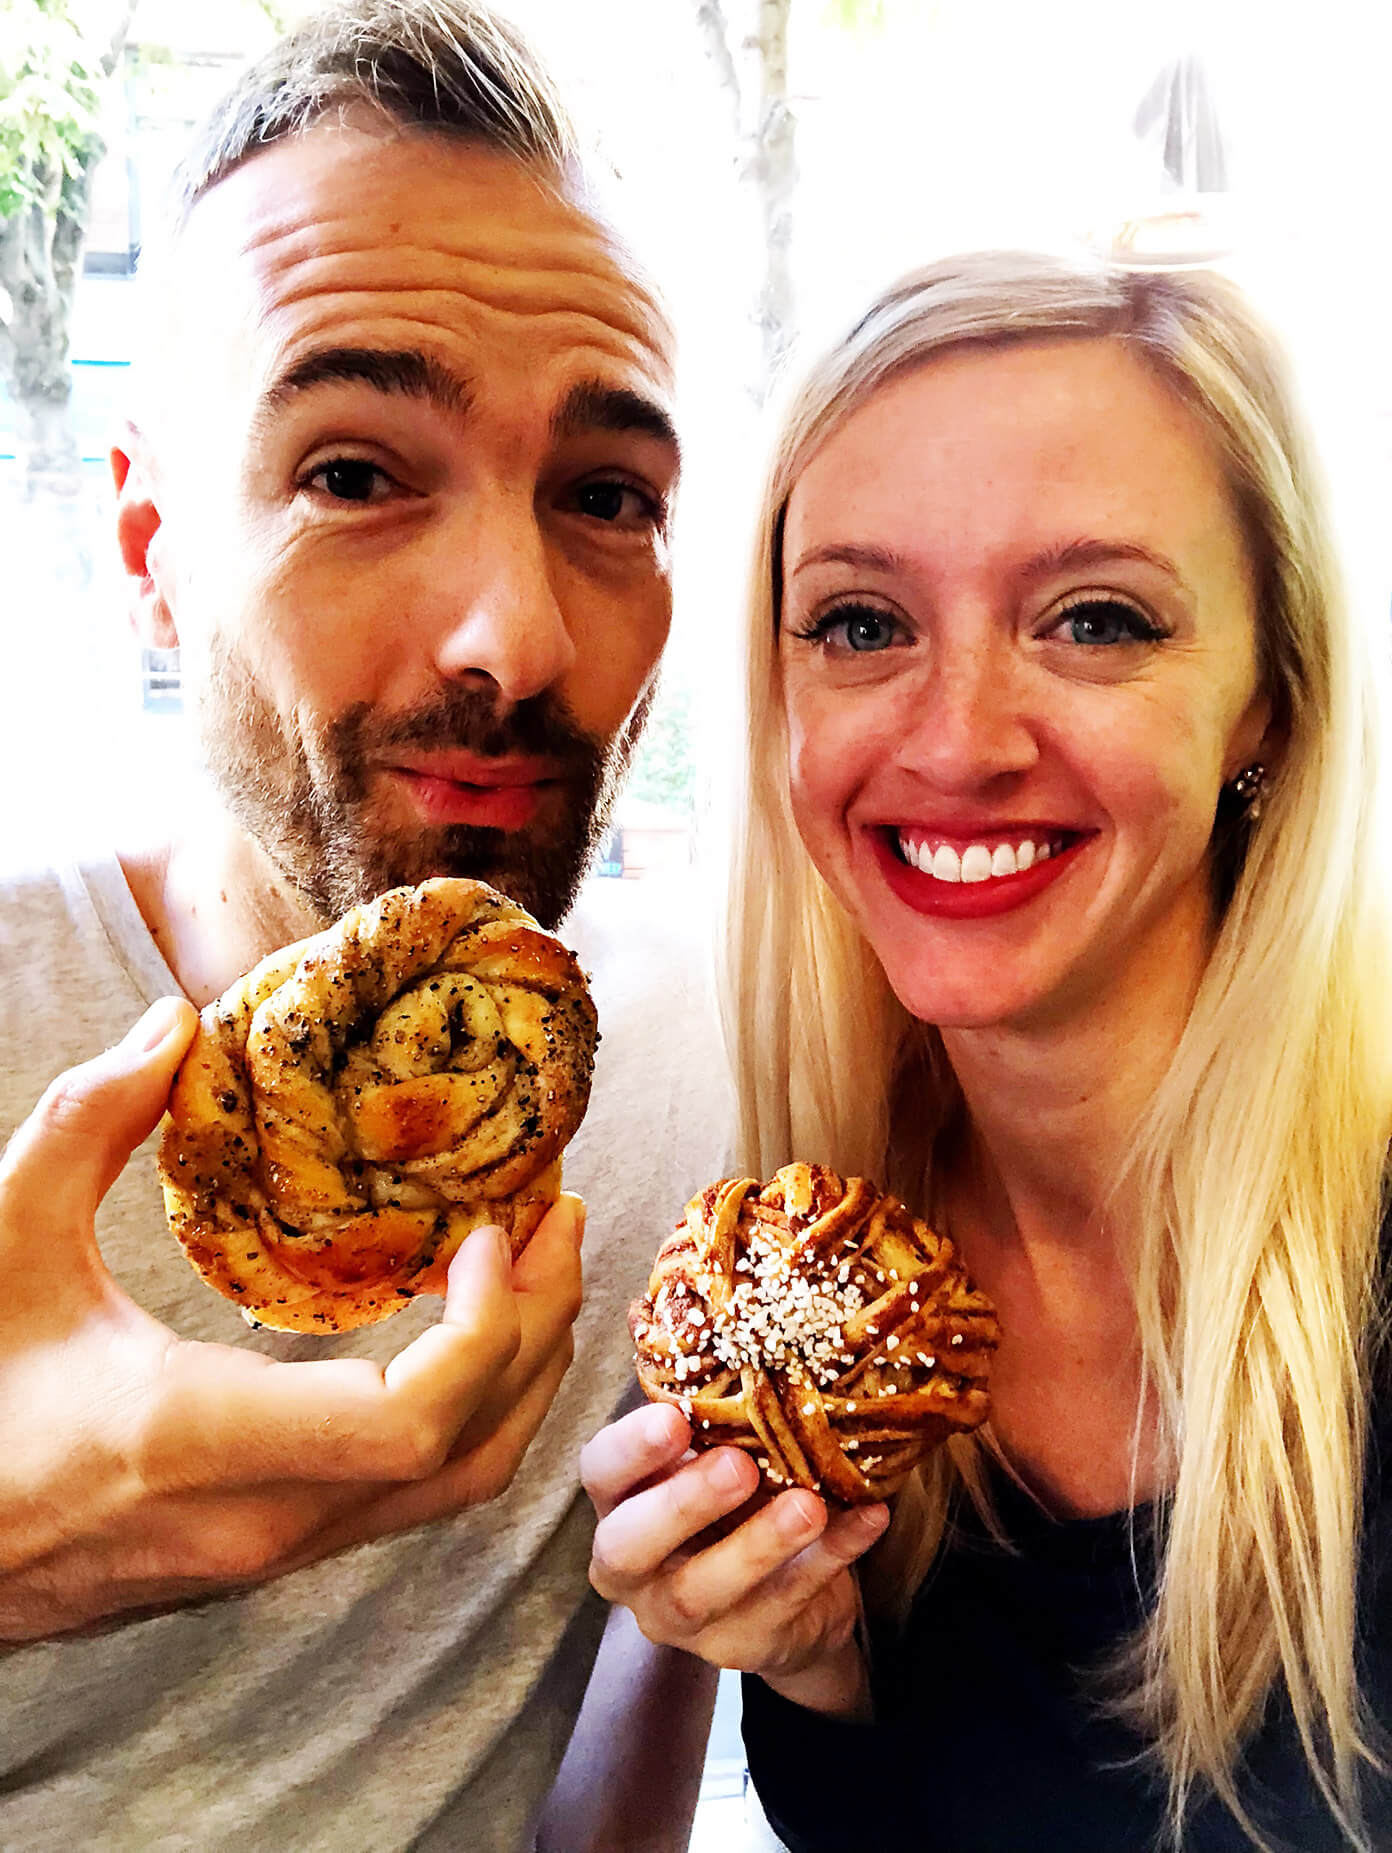 Cinnamon and Cardamom buns are made of magic in Stockholm, Sweden